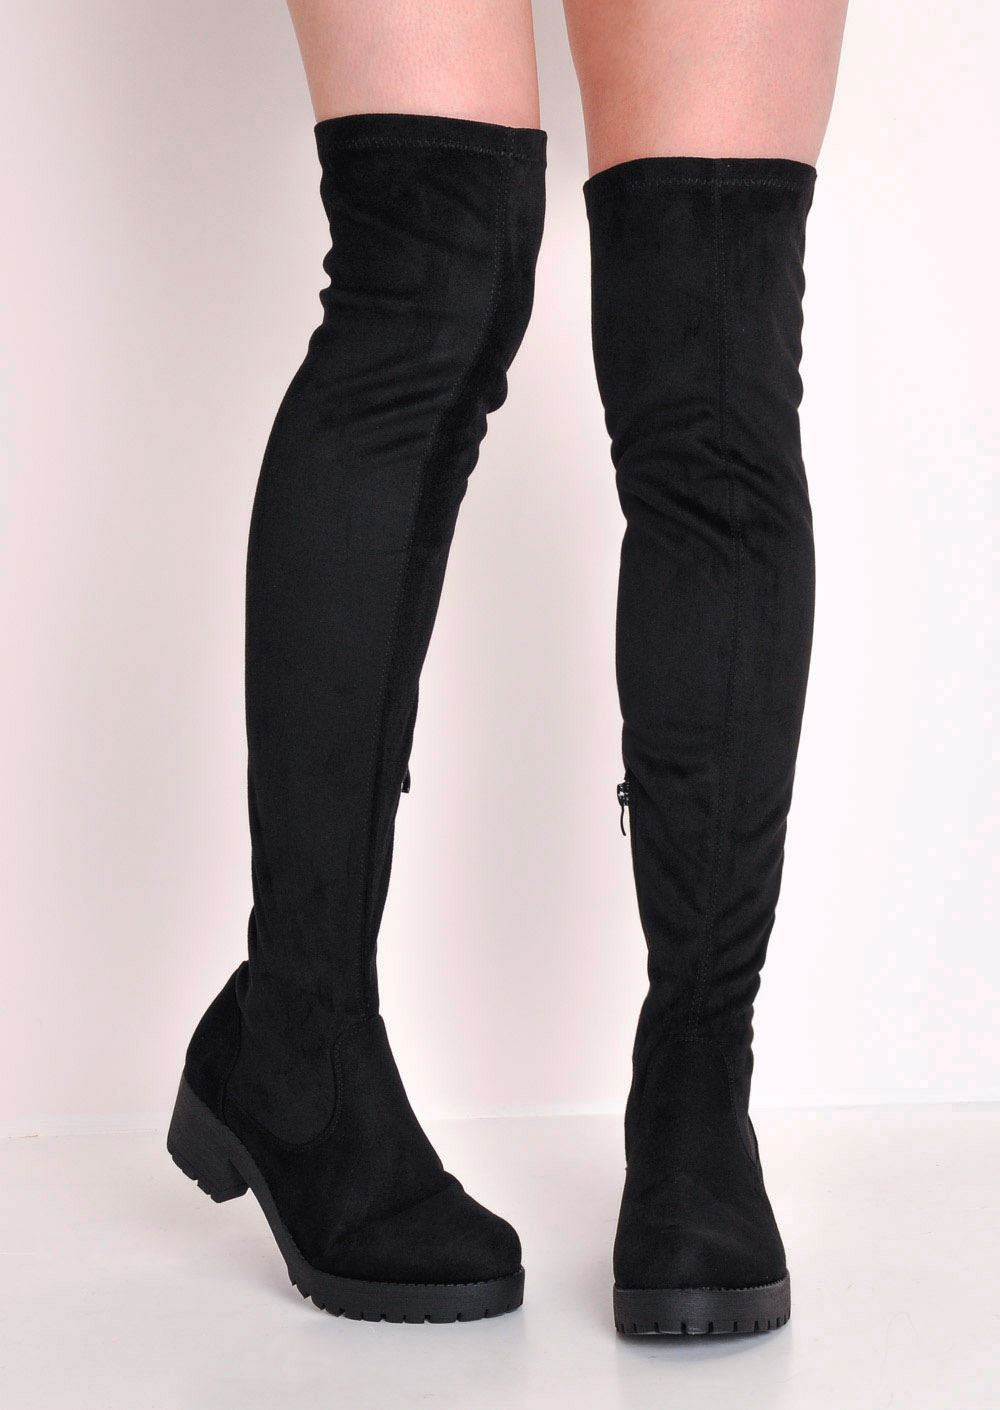 Over-The-Knee-Cleated-Sole-Faux-Suede-Platform-Boots-Black-Chunky-Heel